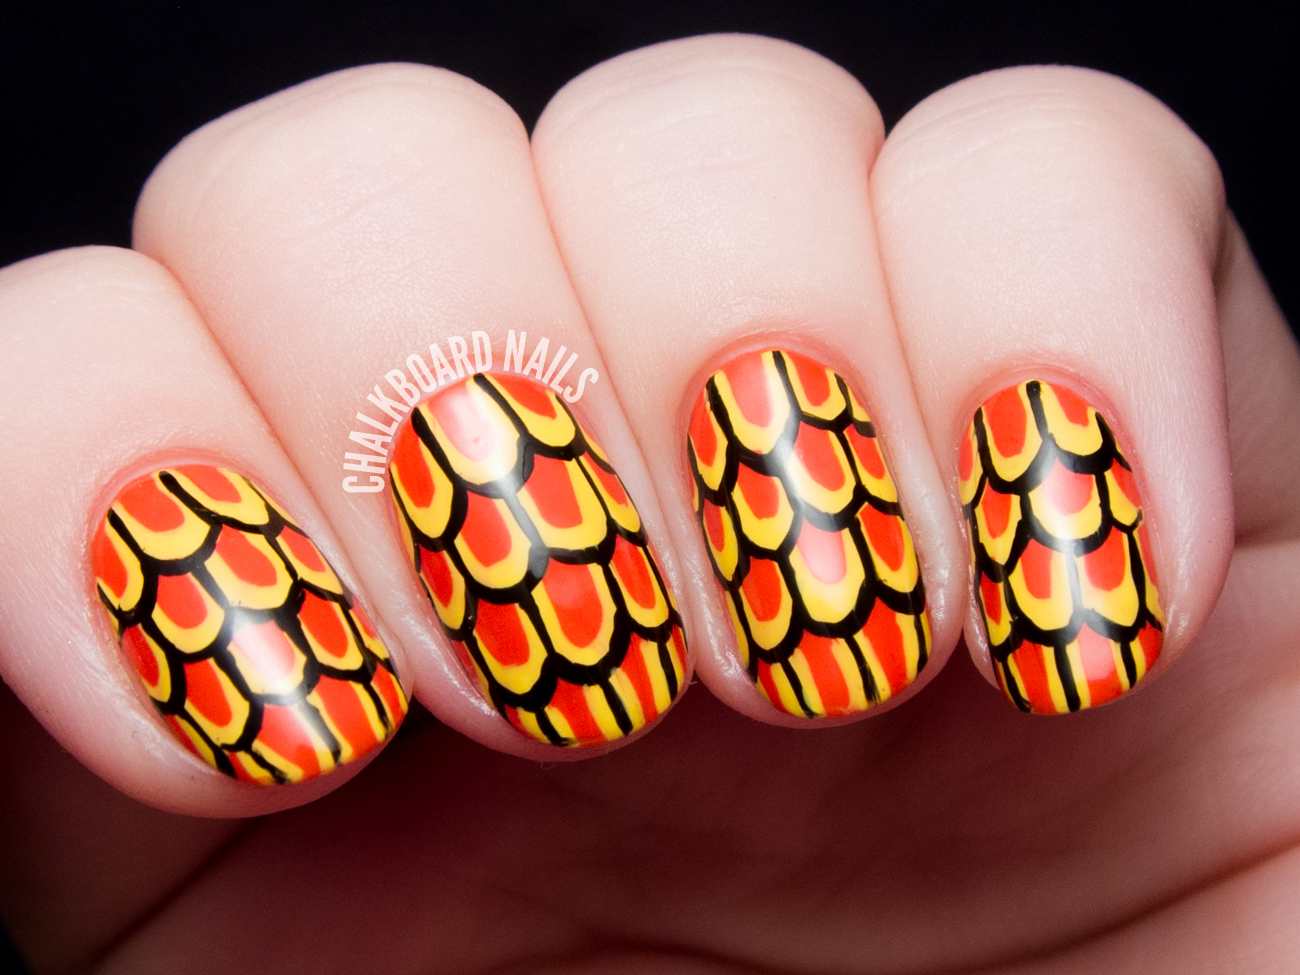 Stylized scale nail art by @chalkboardnails